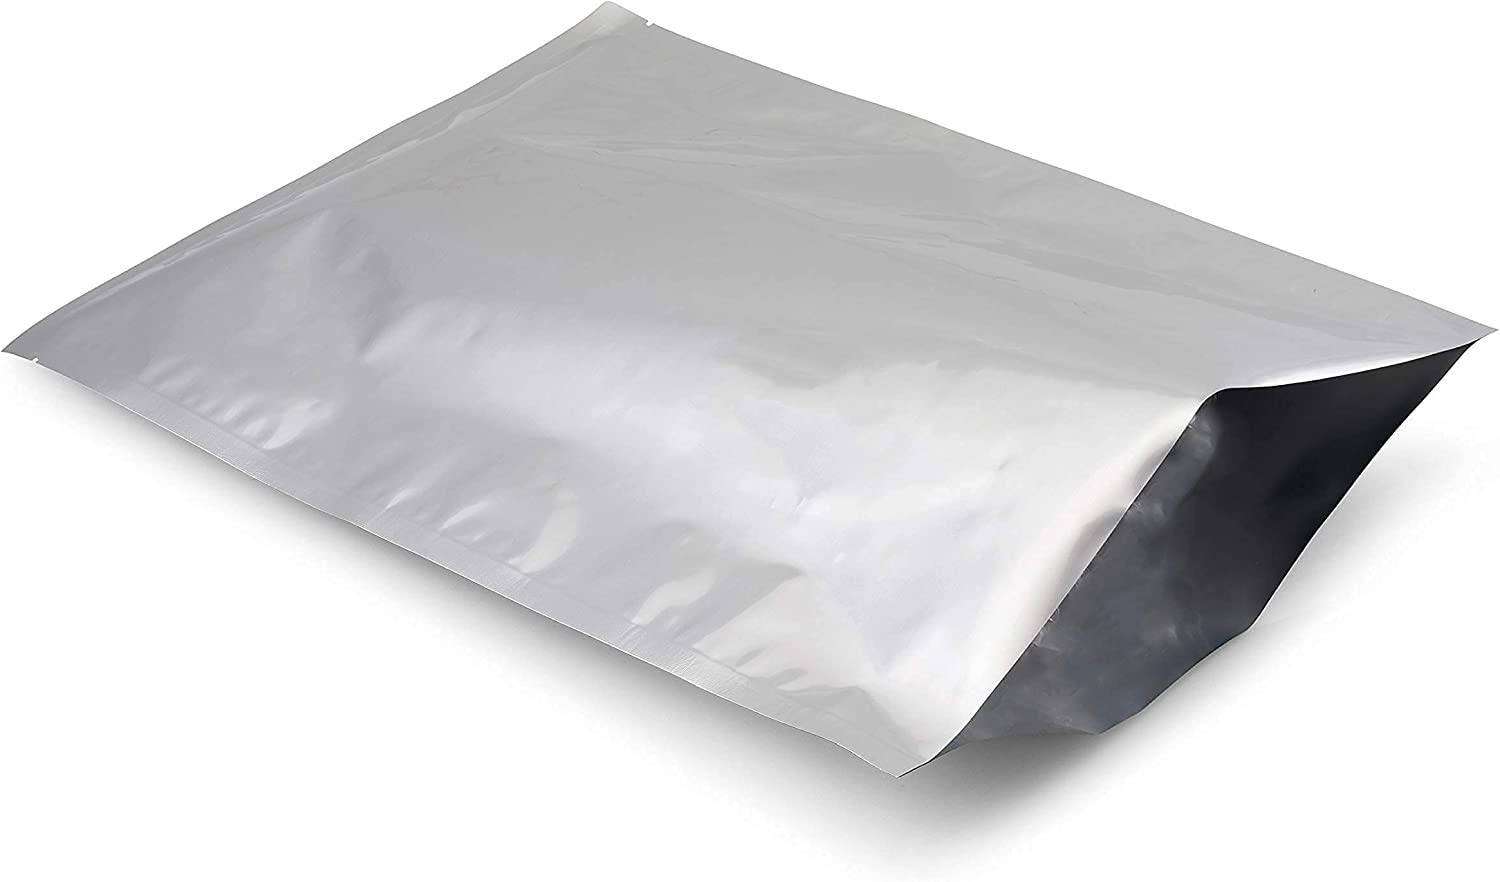 Nave Gear - (50 Pack) 1 Gallon Mylar Bags 5 Mil Thick for Long Term Food Storage - Food Grade Heat Seal Mylar Bag